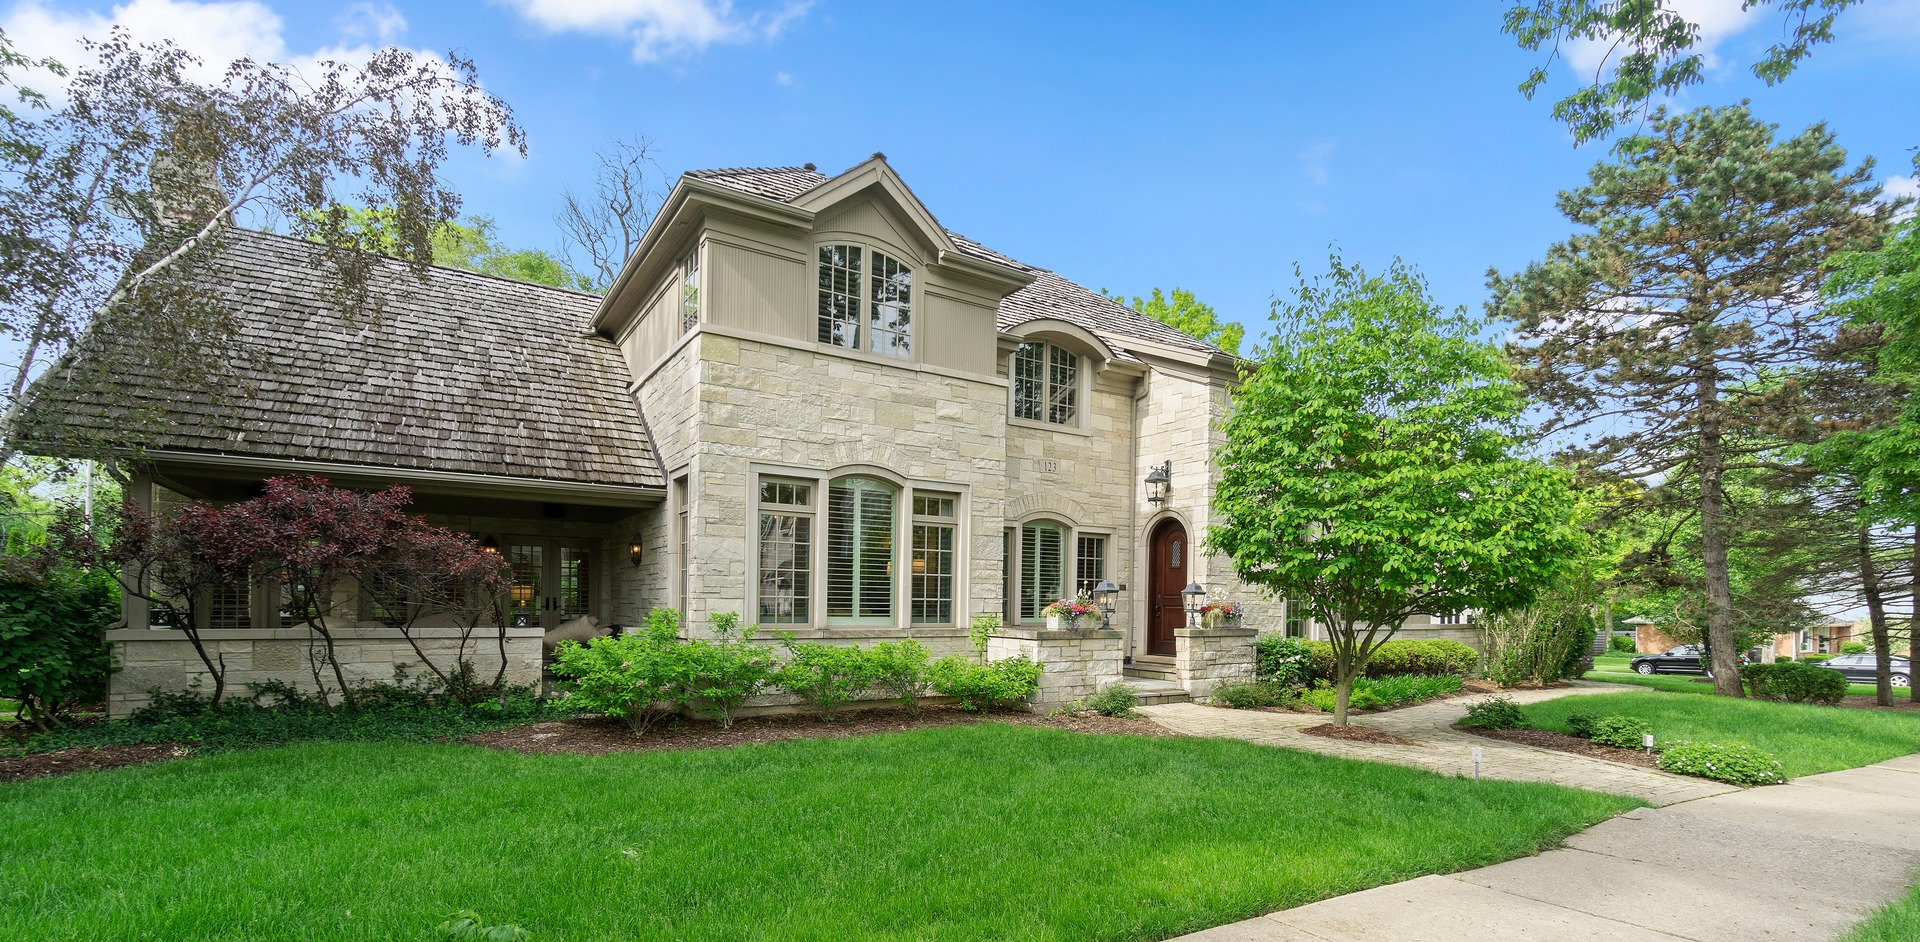 123 East Hickory, Hinsdale, Illinois, 60521